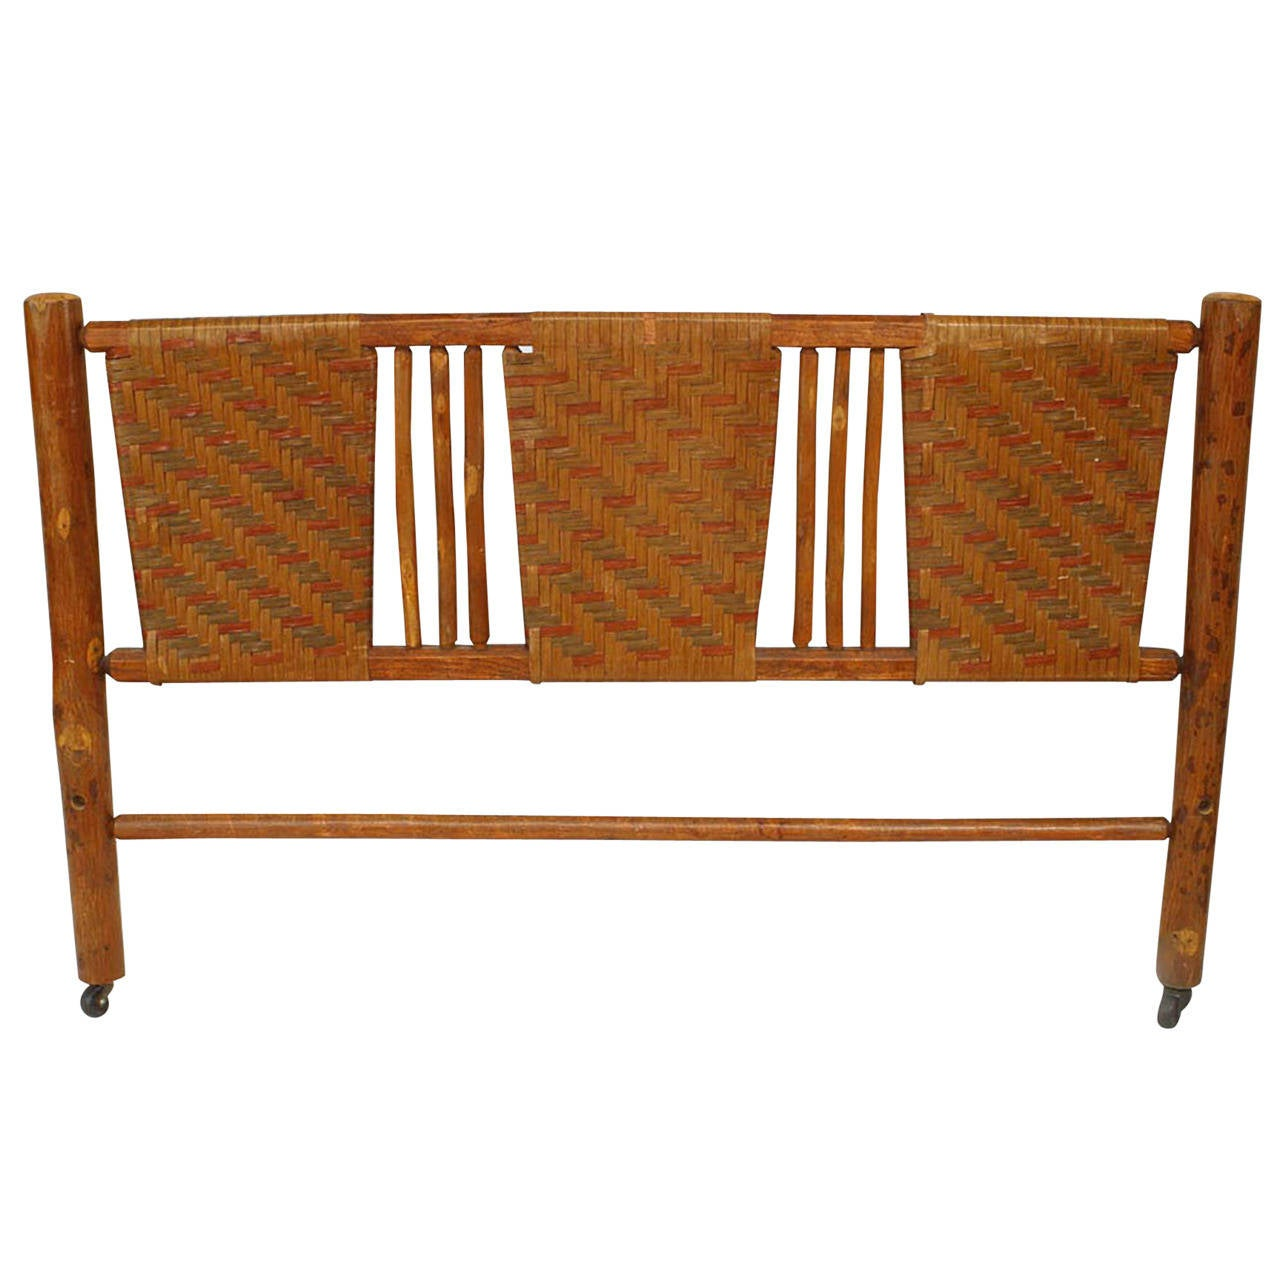 American Rustic Woven Headboard By The Columbus Hickory Furniture Co. For  Sale